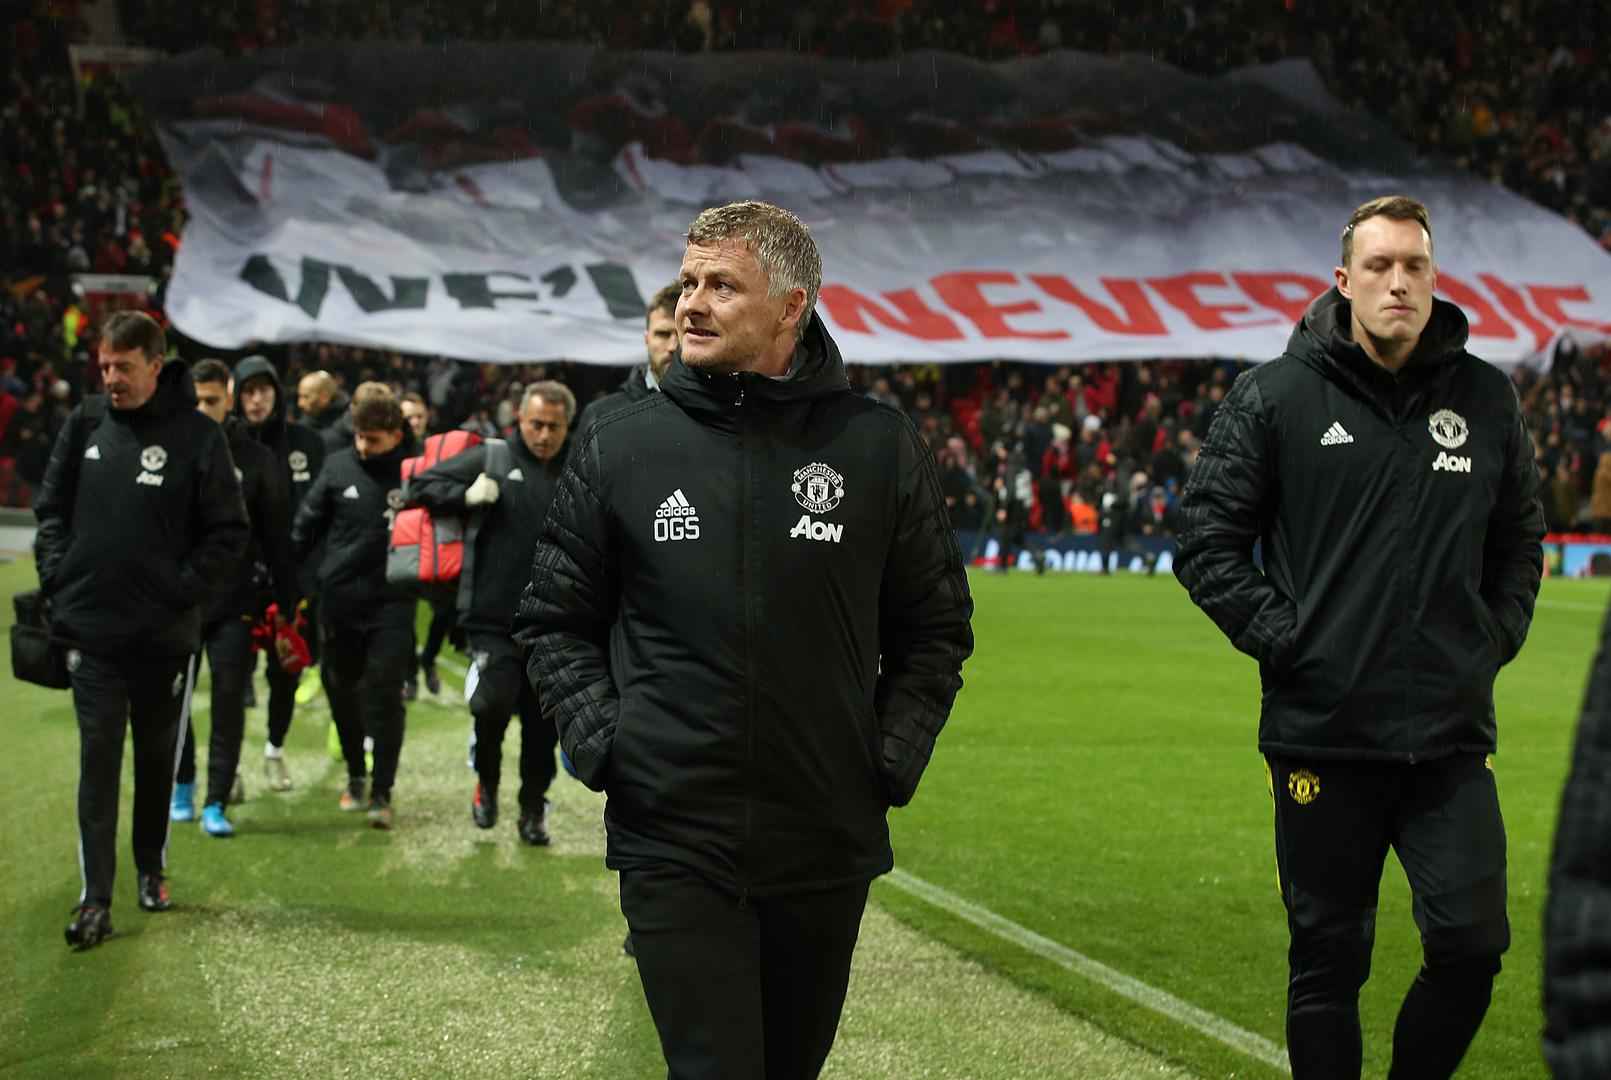 Ole Gunnar Solskjaer walks to his place in the dug-out.,